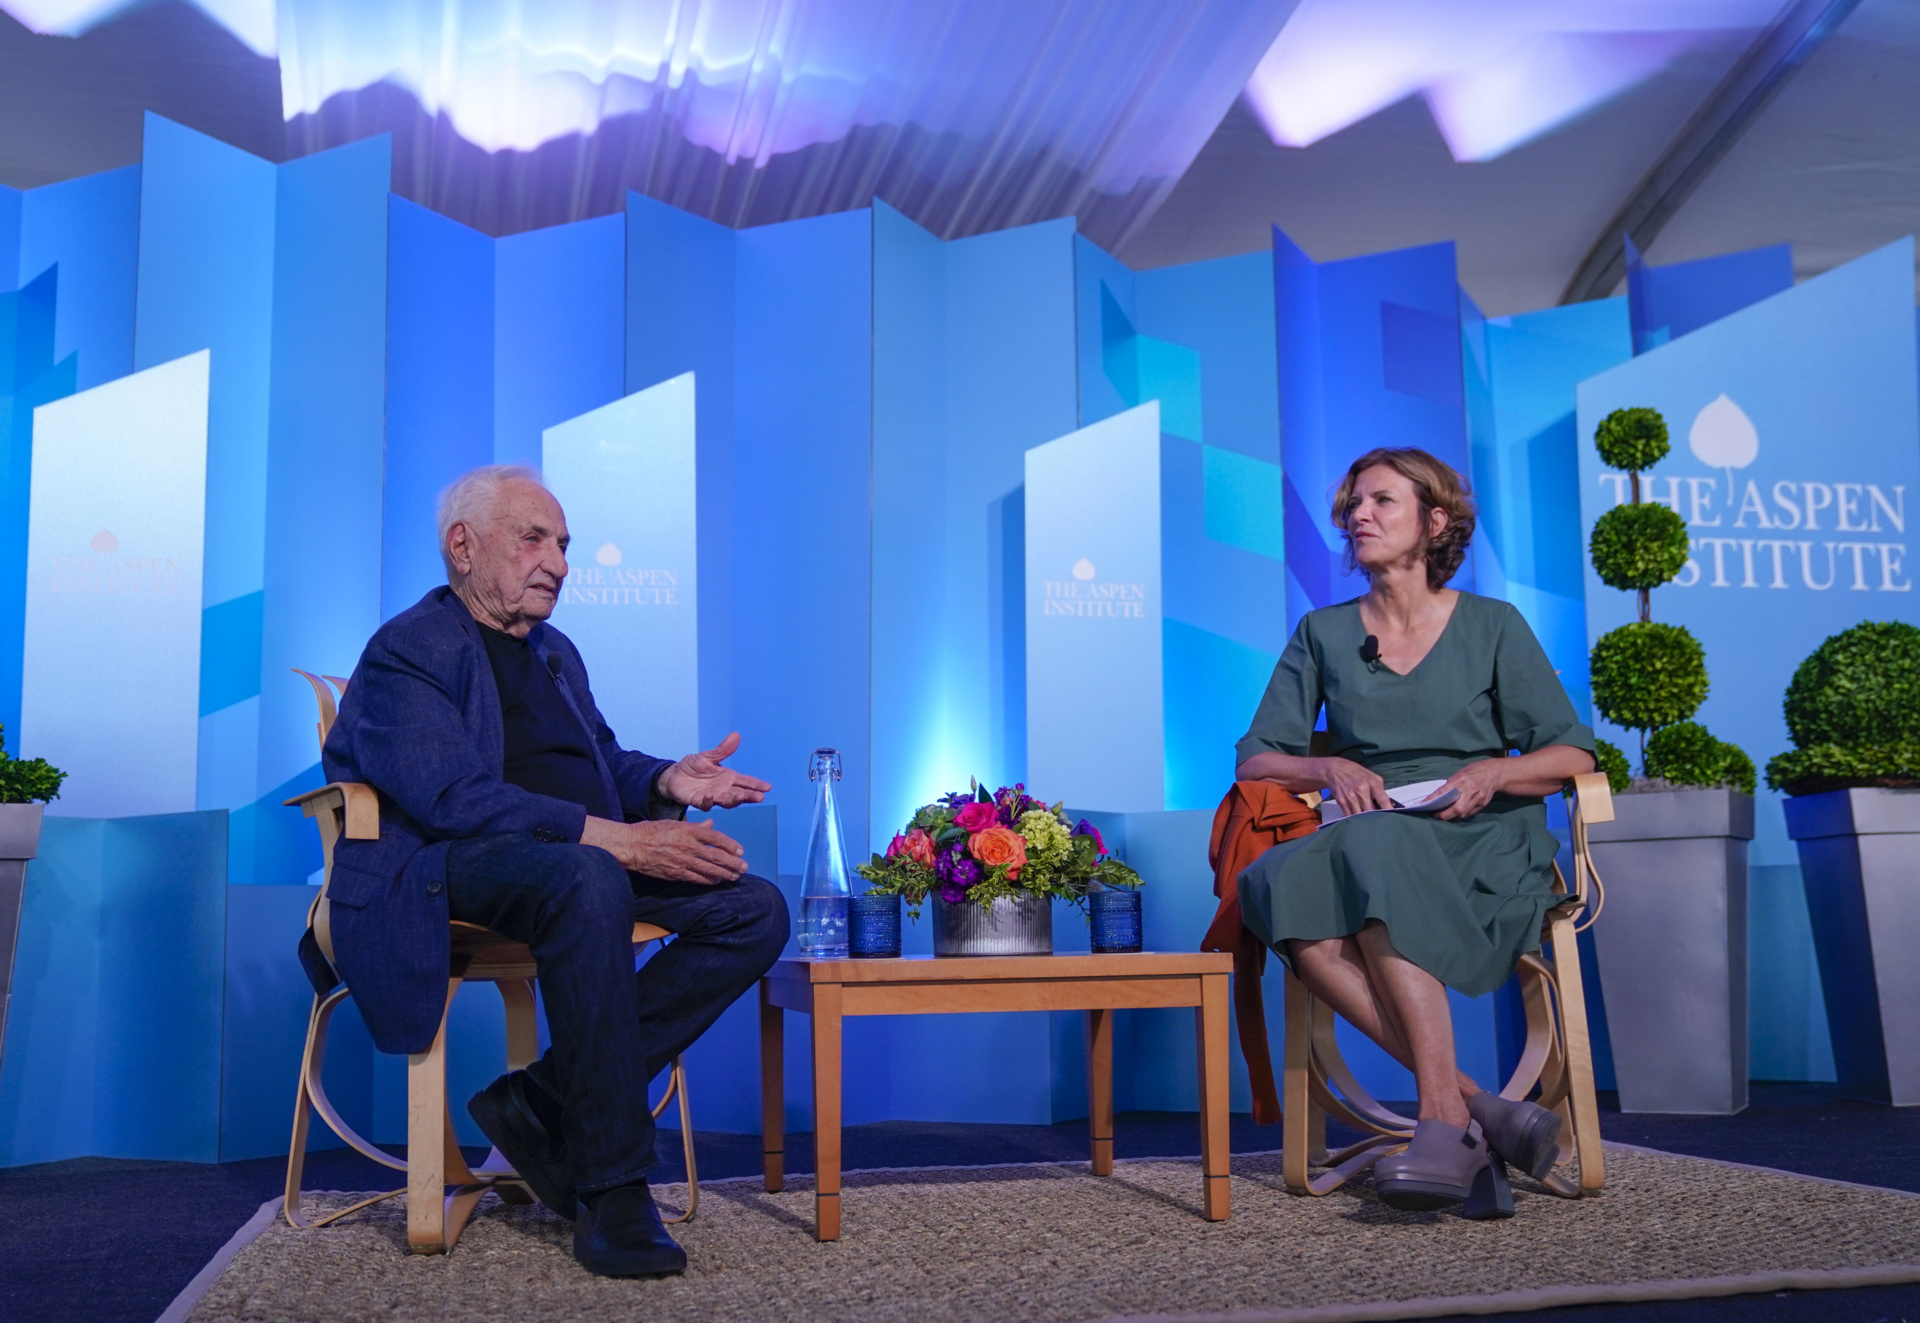 Introduction: Summer Celebration Conversation Honoring Frank Gehry